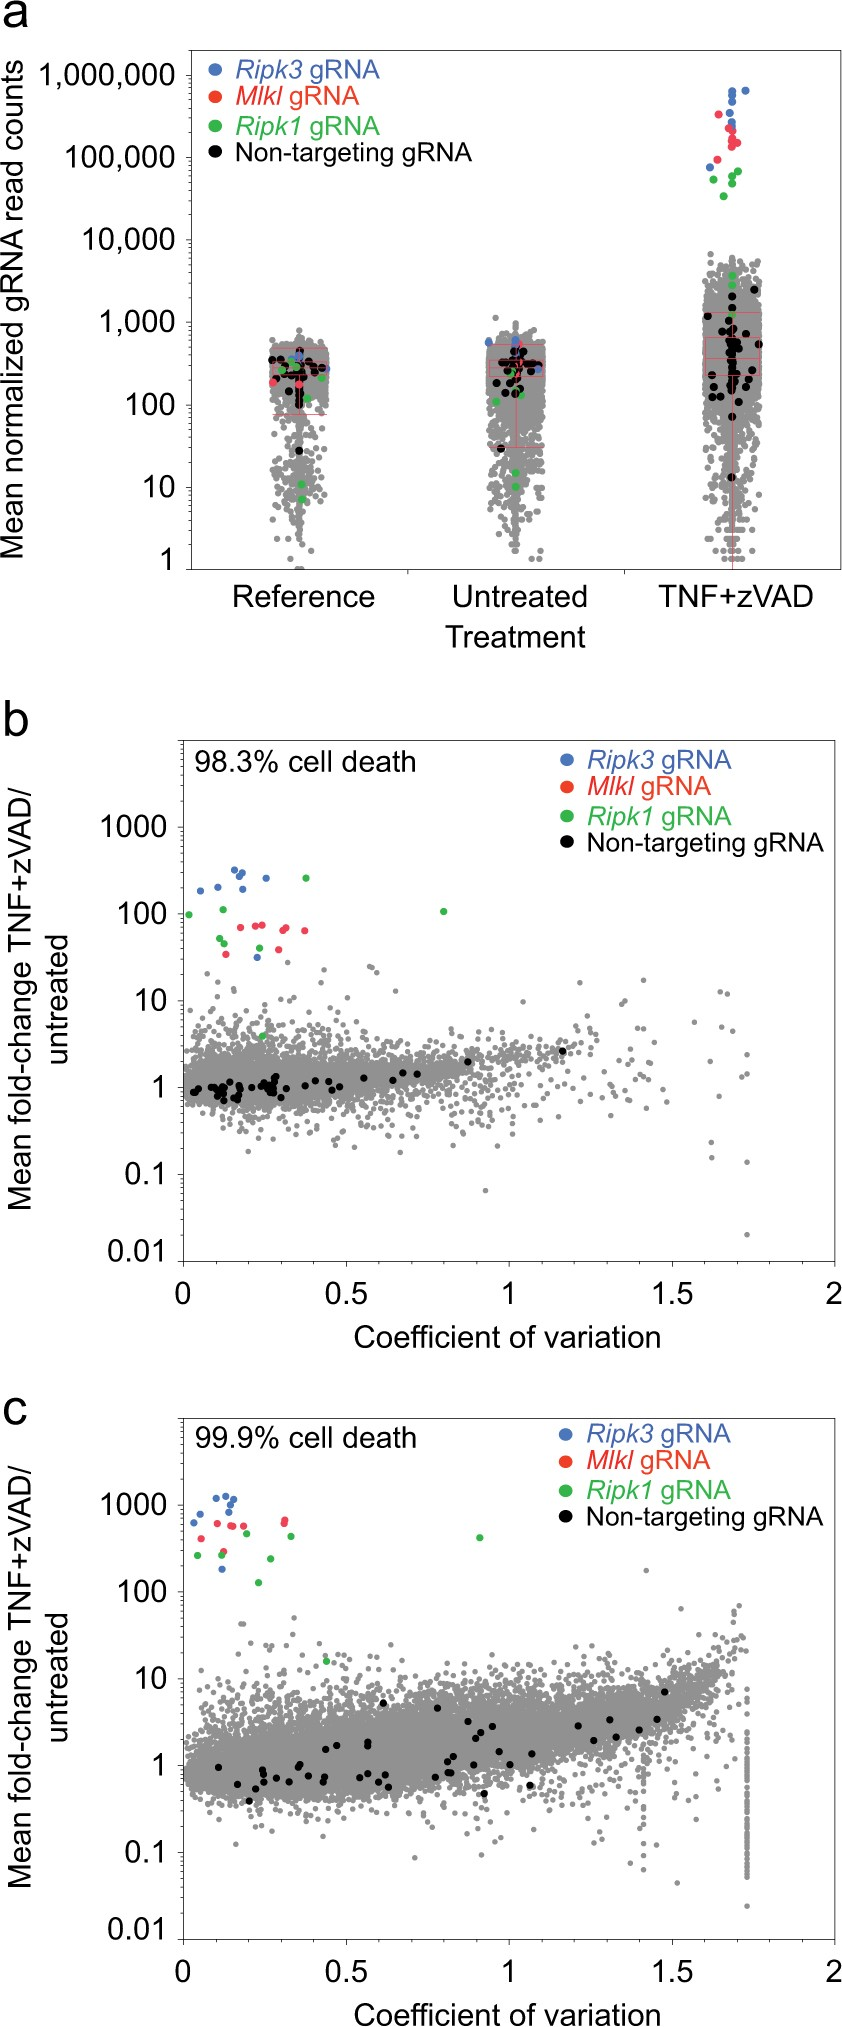 Crispr Whole Genome Screening Identifies New Necroptosis Regulators Ntc Selection Criteria Steady State Current And Ripk1 Alternative Splicing Cell Death Disease